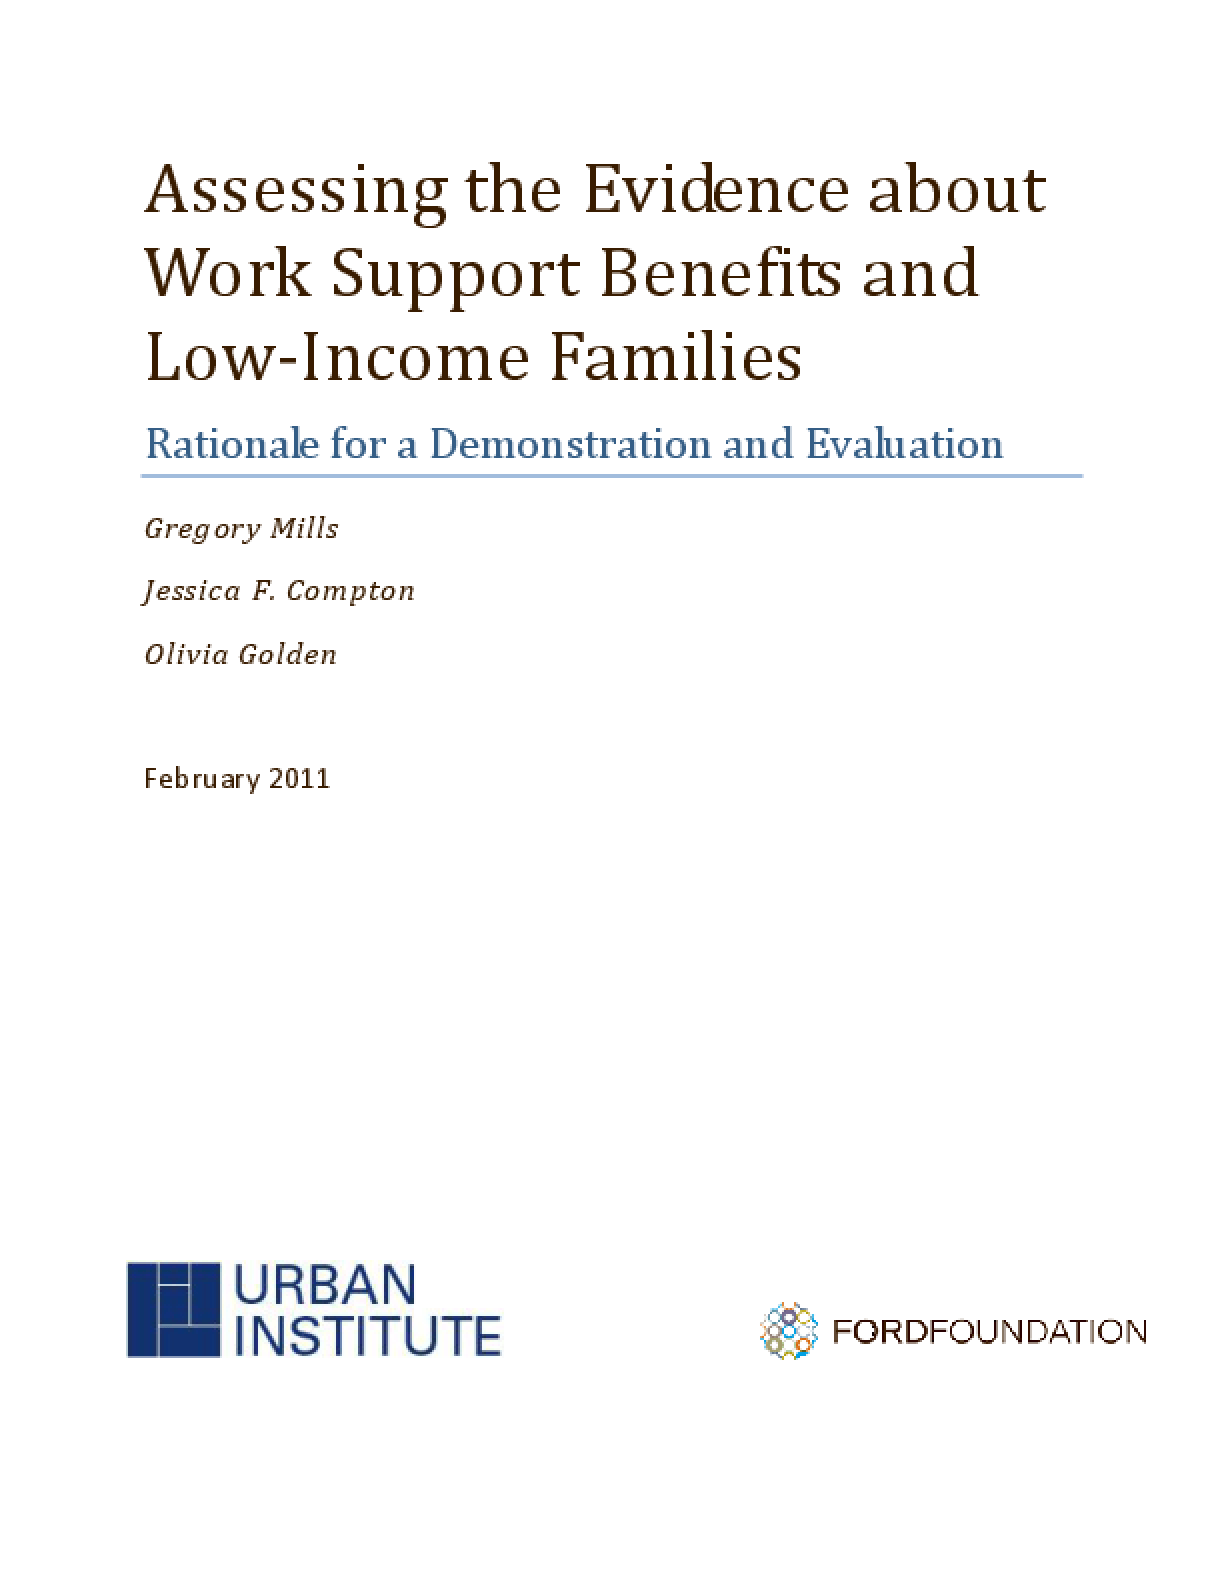 Assessing the Evidence About Work Support Benefits and Low-Income Families